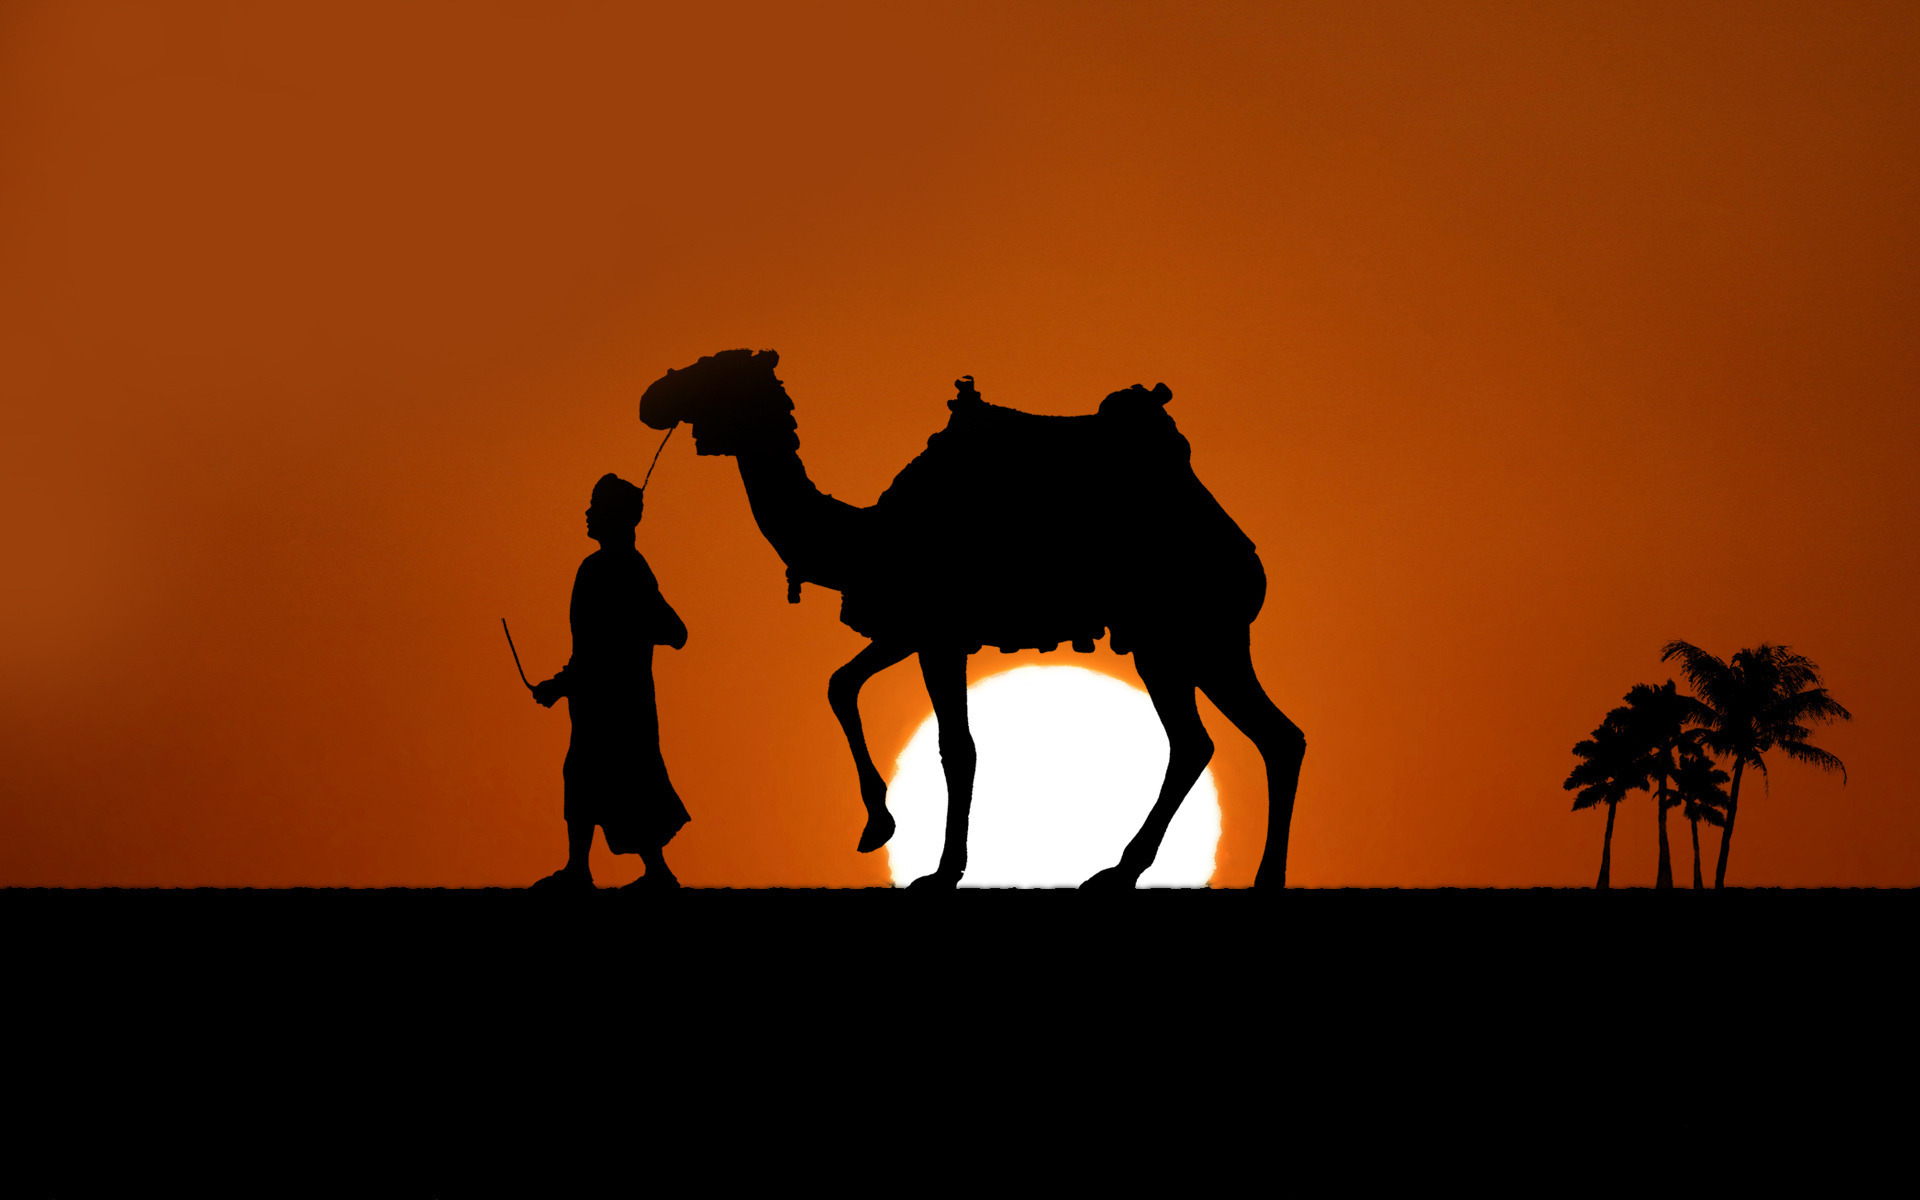 desert and camel wallpaper hd - photo #29